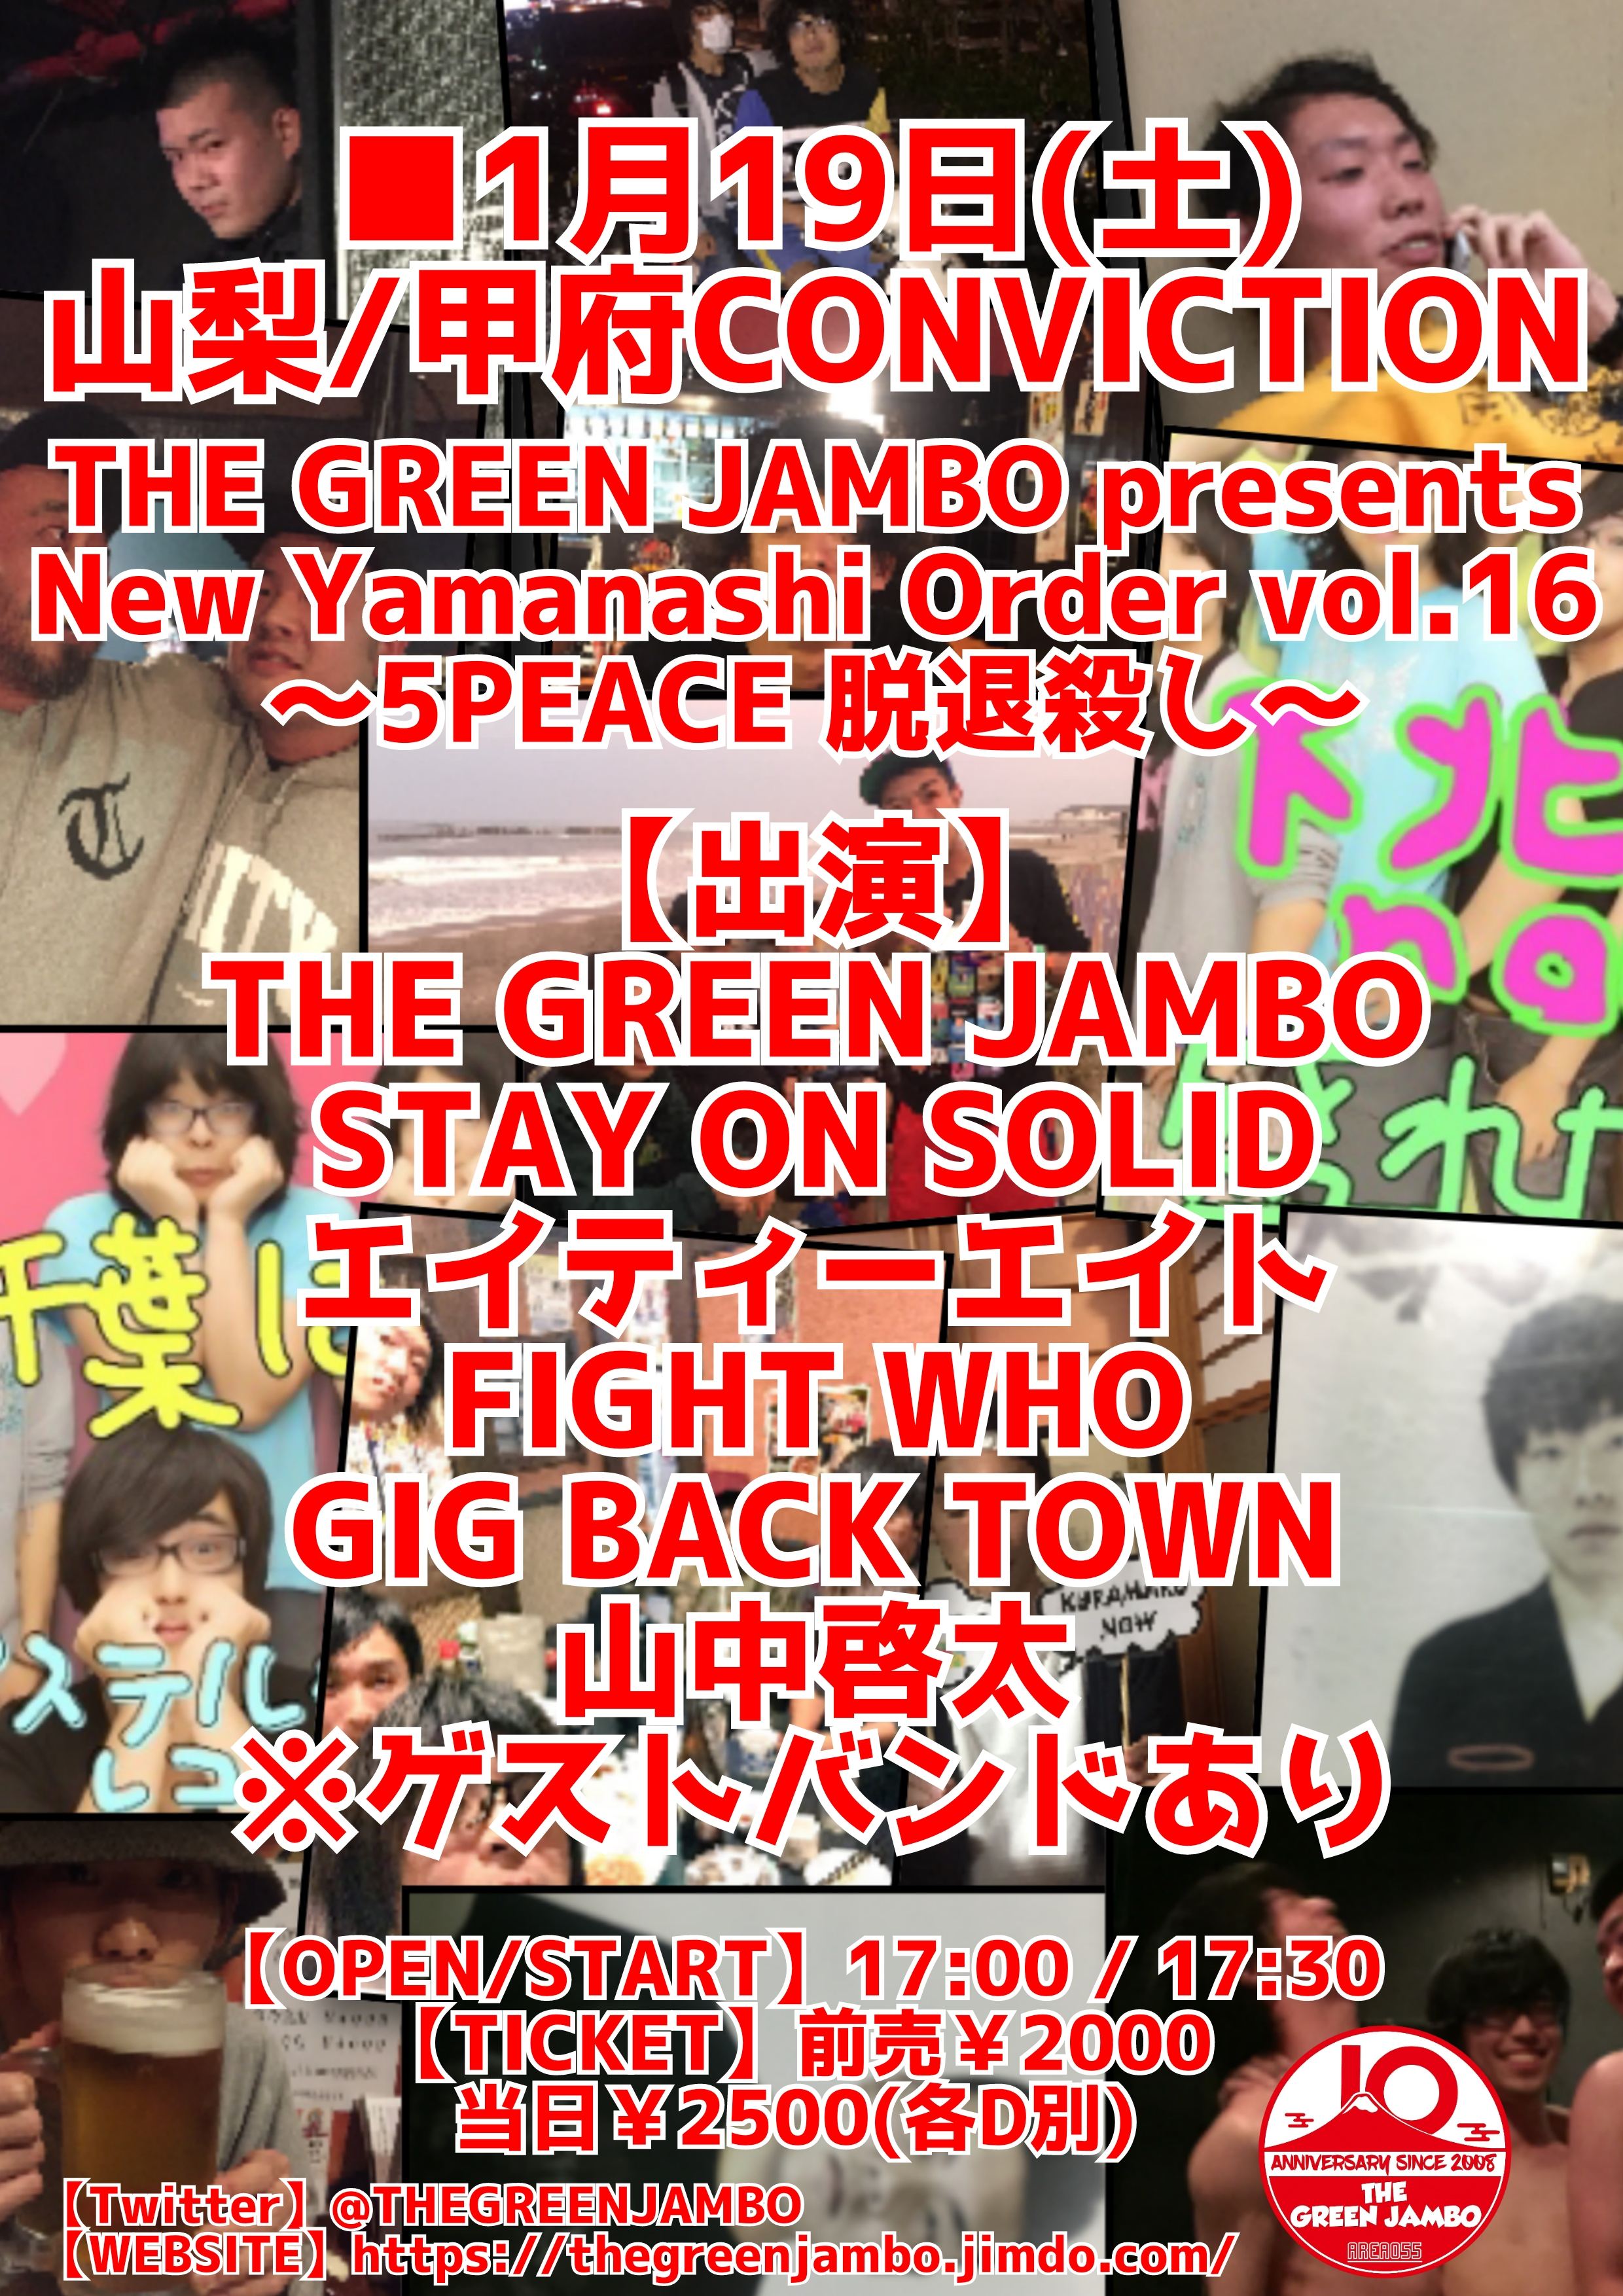 THE GREEN JAMBO pre. 『New Yamanashi Order Vol.16〜脱退殺し〜』